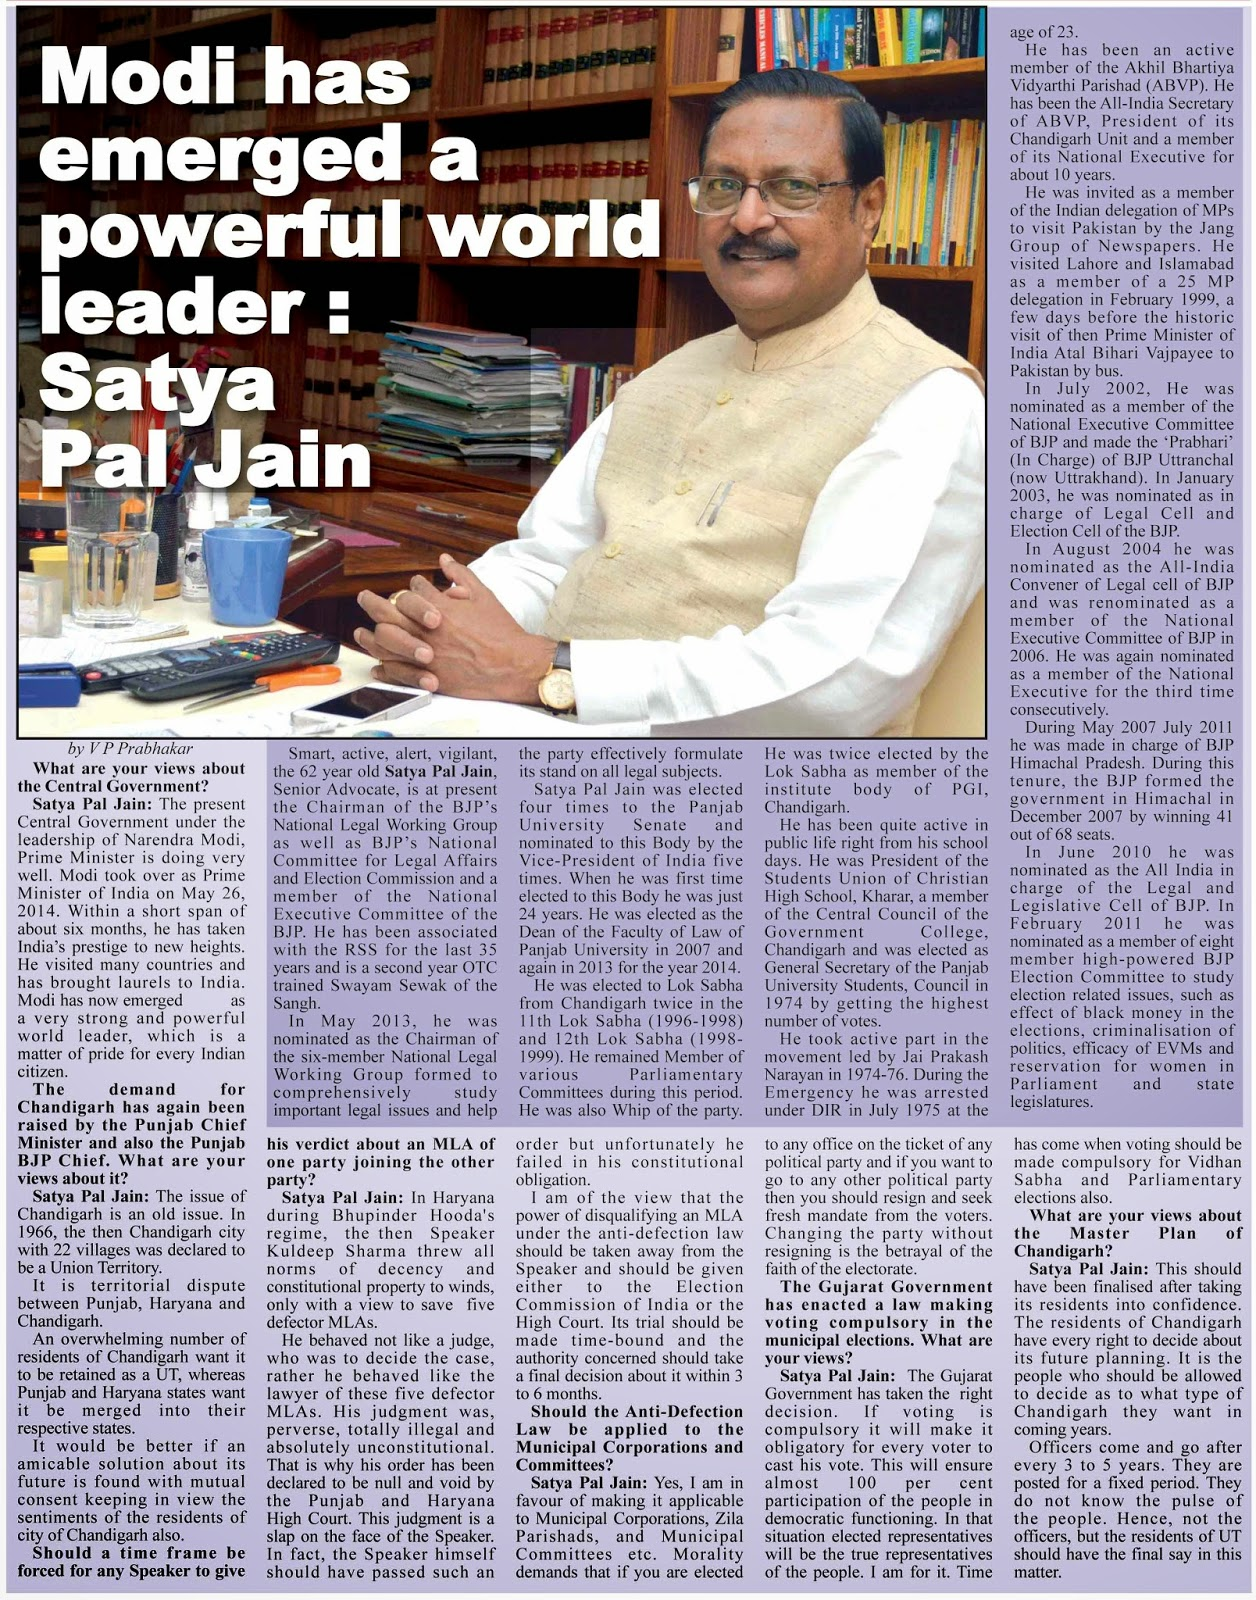 Modi has emerged a powerful world leader : Satya Pal Jain